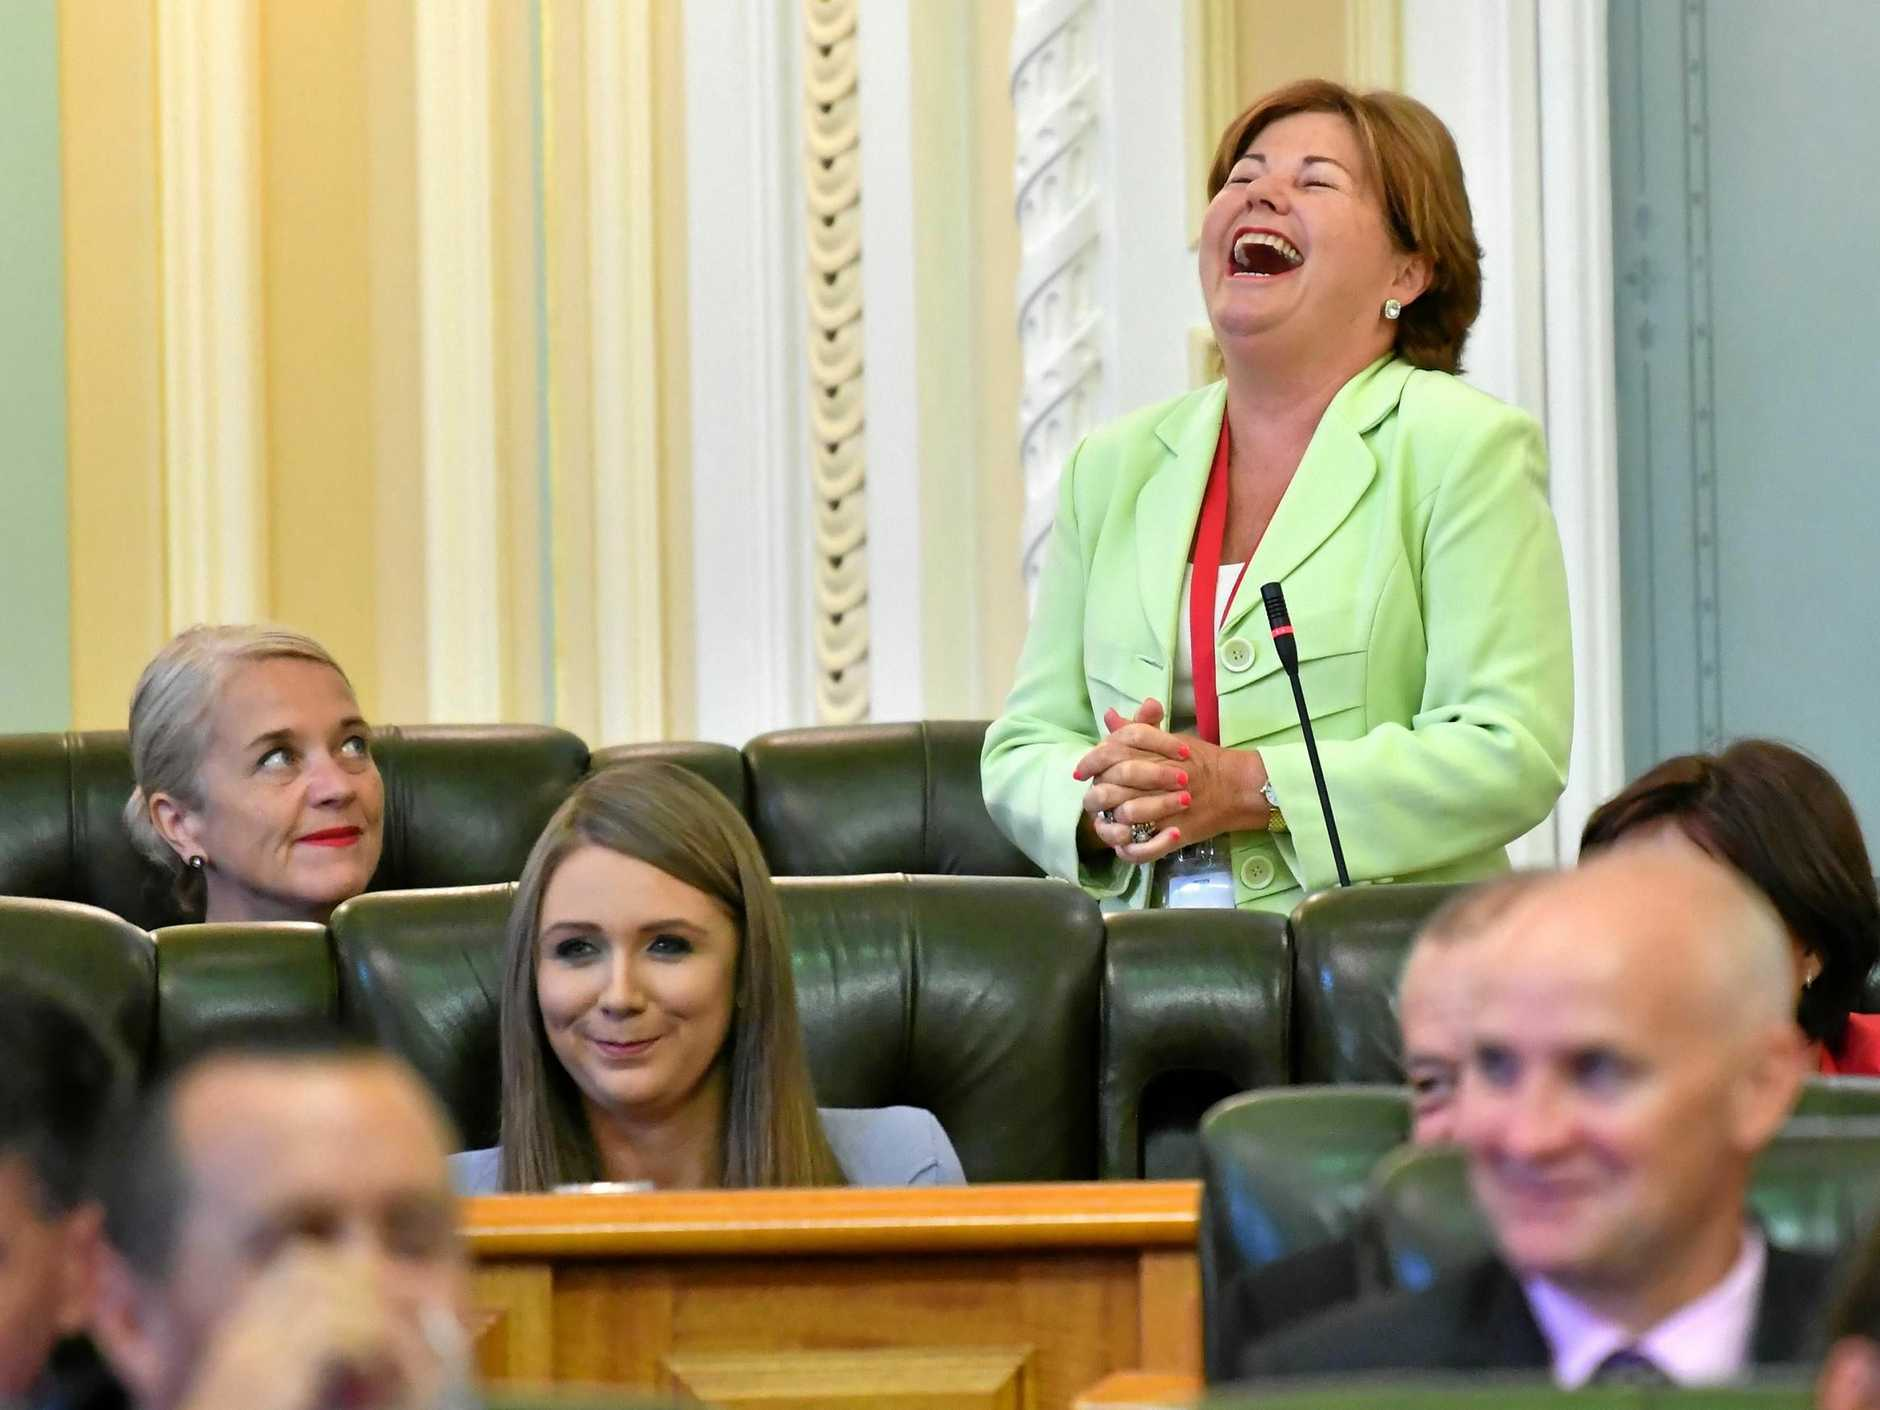 Labor Member for Bundamba Jo-Ann Miller is one of three MPs accused of not working together for Ipswich.